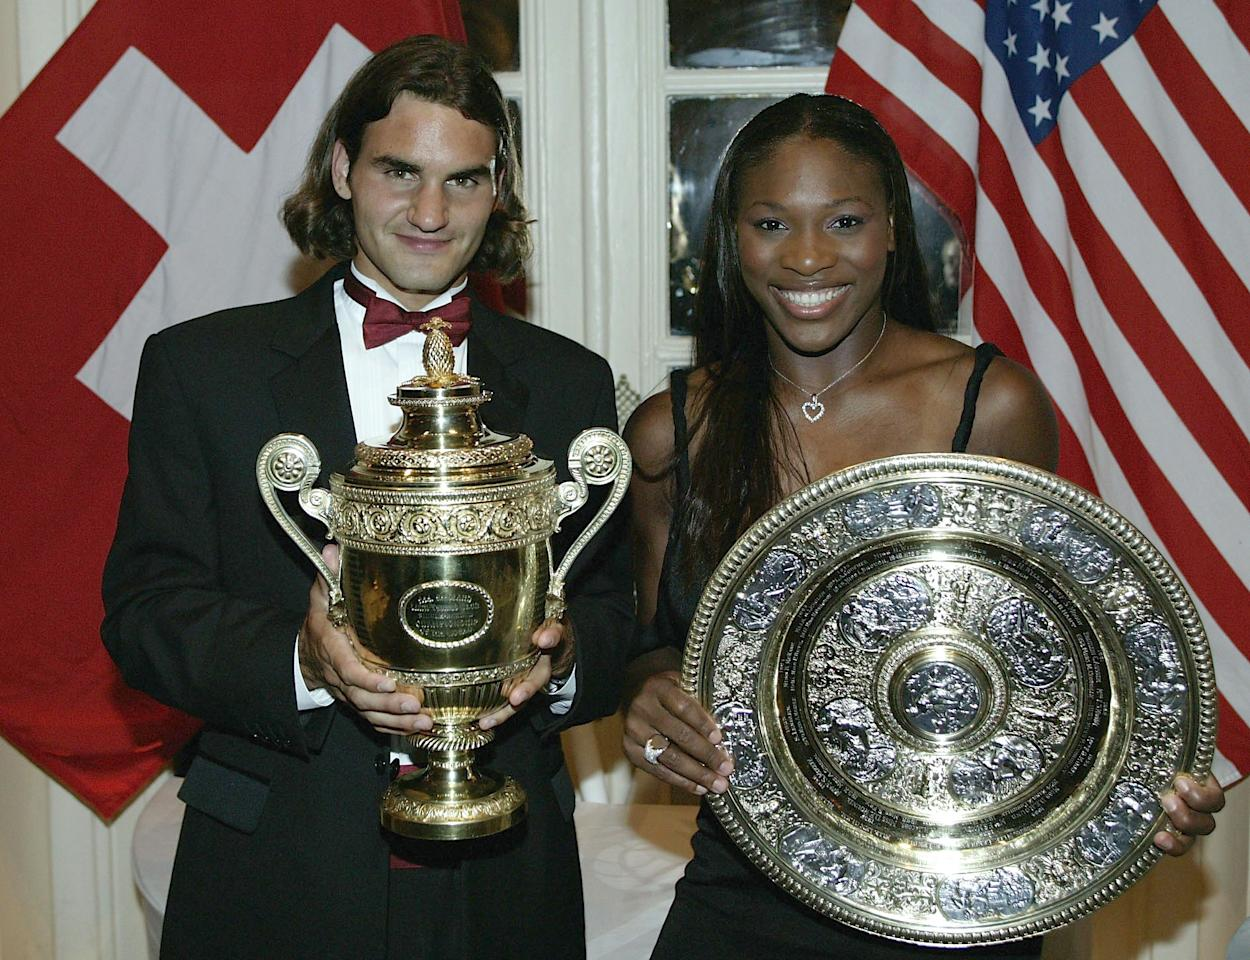 LONDON - JULY 6:  (FILE PHOTO) Wimbledon Champions Roger Federer of Switzerland and Serena Williams of the U.S. pose for photographs prior to attending the Wimbledon Ball at the Savoy Hotel on July 6, 2003 in London.  (Photo by Alex Livesey/Getty Images)  Celebrating 125 Years Of Wimbledon  Please refer to the following profile on Getty Images Archival for further imagery.  https://ec.yimg.com/ec?url=http%3a%2f%2fwww.gettyimages.co.uk%2fSearch%2fSearch.aspx%3fEventId%3d115973863%26amp%3bEditorialProduct%3dArchival%0aFashions&t=1503364061&sig=2YpweqZQmEF101oLFrKGqw--~D  http://www.gettyimages.co.uk/Search/Search.aspx?EventId=115973067&EditorialProduct=Archival  For further imagery also see this lightbox http://www.gettyimages.co.uk/Account/MediaBin/LightboxDetail.aspx?Id=19295855&MediaBinUserId=3936288